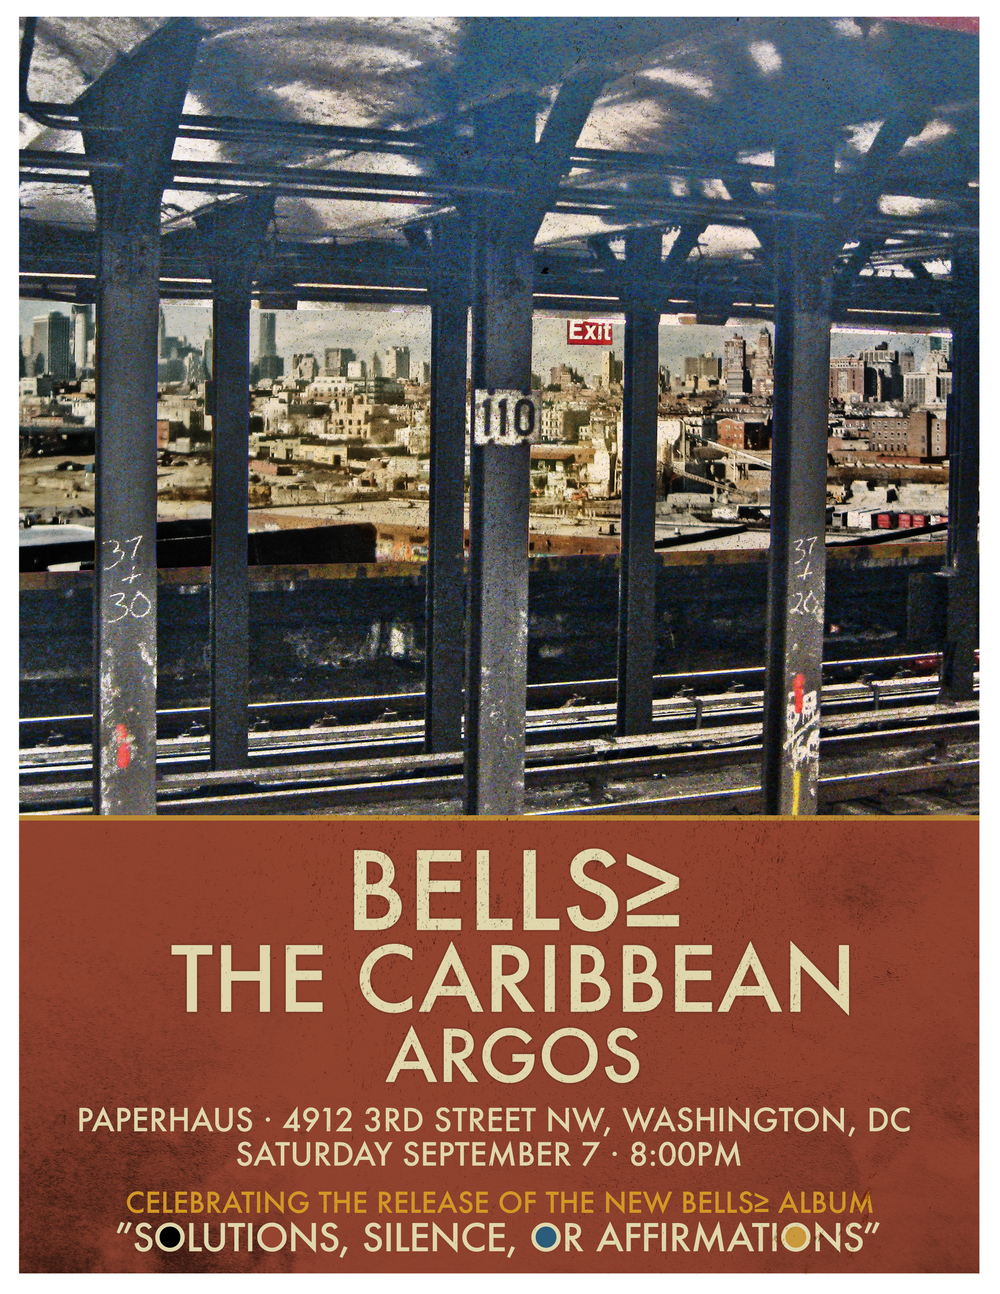 BELLS≥ PAPERHAUS_090713 copy.jpg